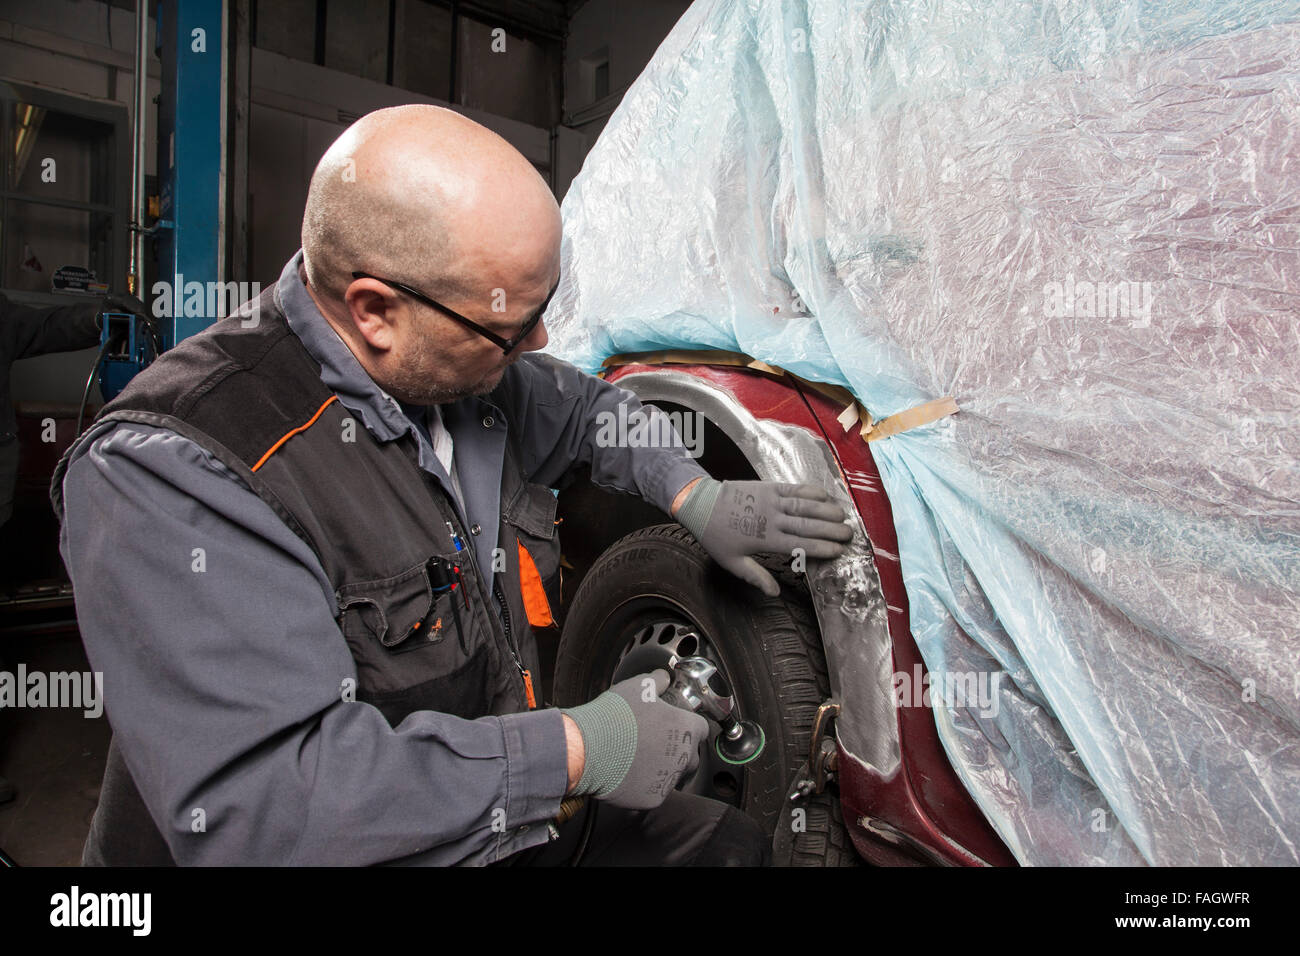 Car-body firm works on a wing with an angle grinder. - Stock Image